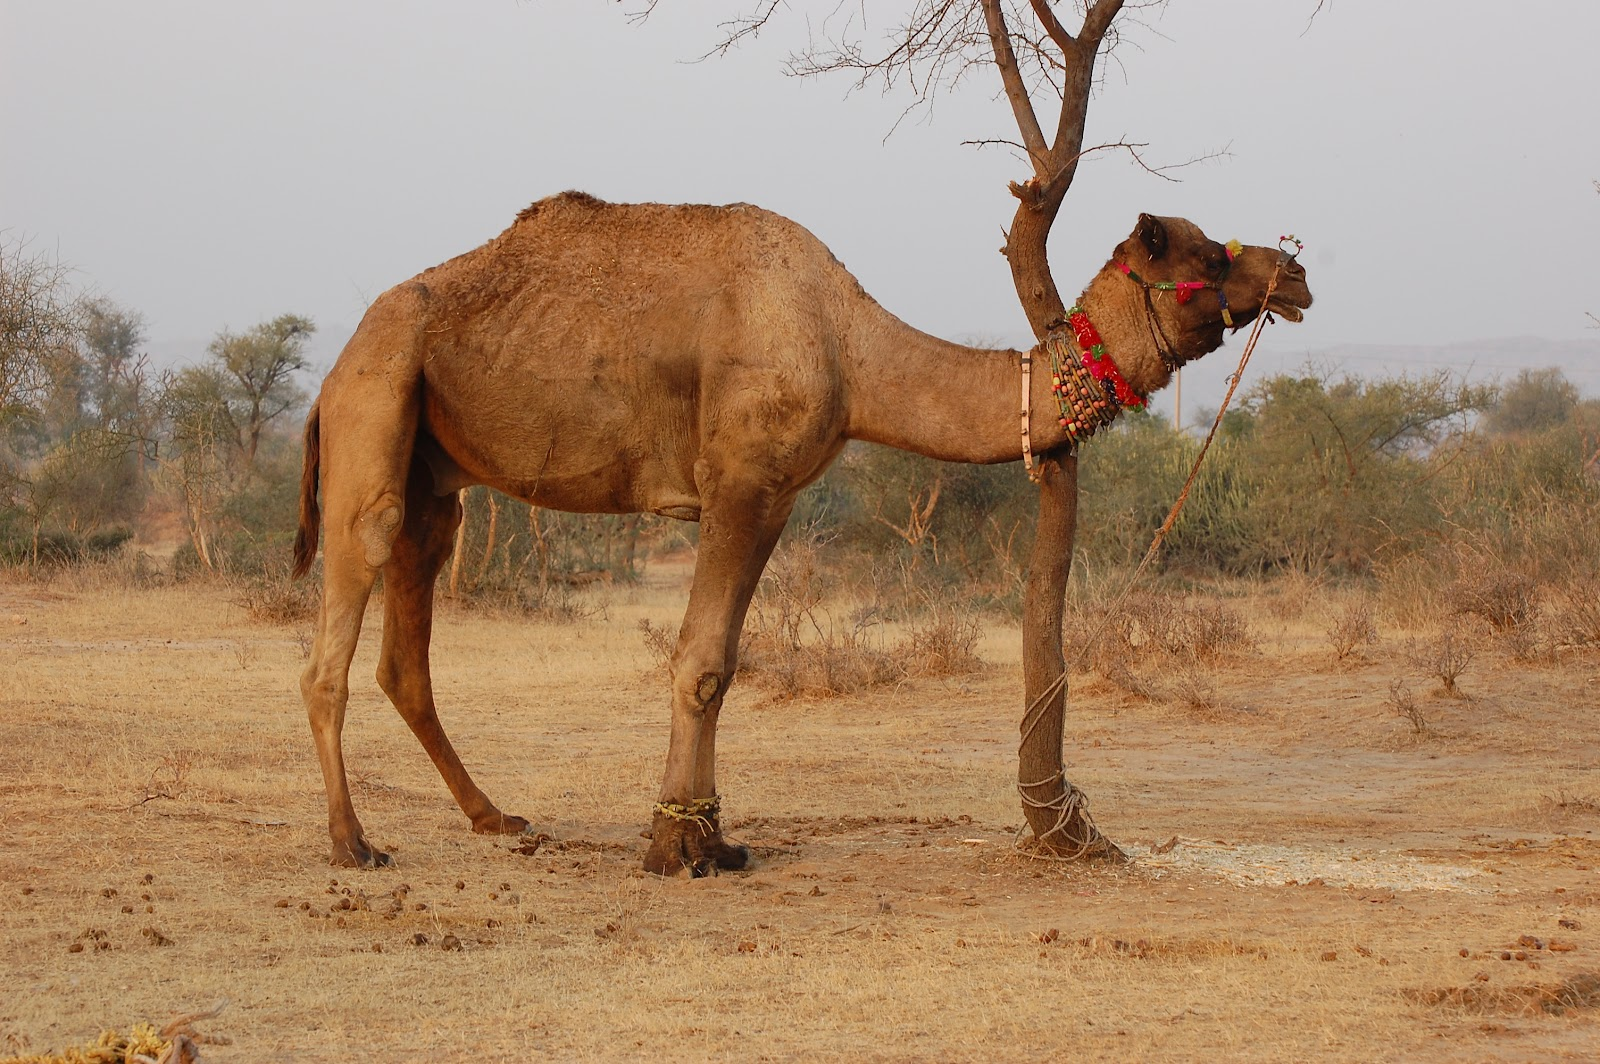 Two Hump Camel http://wildlifeanimalz.blogspot.com/2012/04/camel-facts-and-nice-photos-images.html